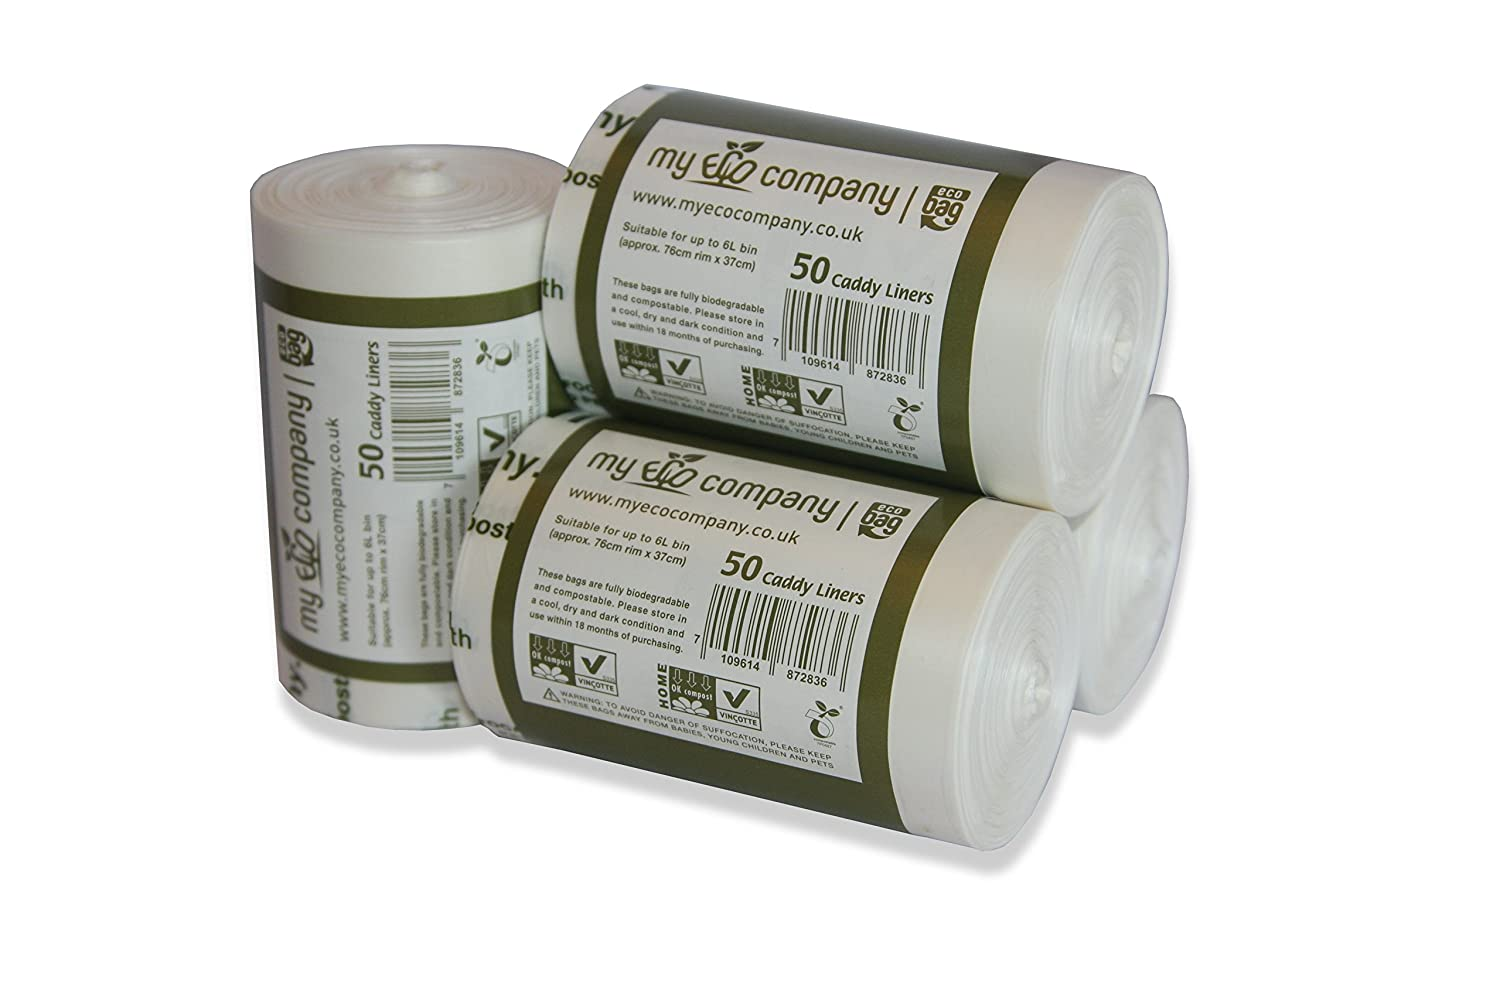 My Eco Company 5L / 6L Compostable Kitchen Food Waste Compost Bin Bags - 200 Caddy Liners (5 Litre / 6 Litre)